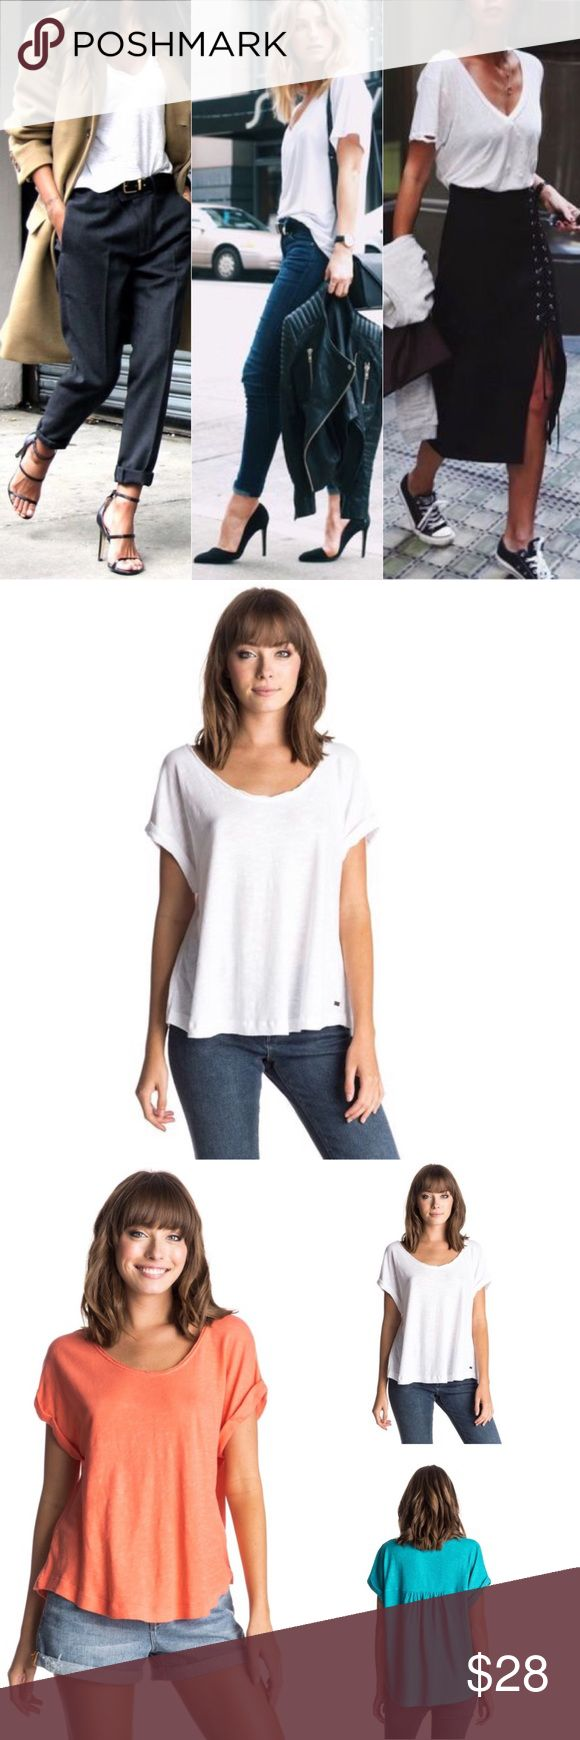 Roxy Point Dume Slub Tee Roxy Point Dume Slub Tee  Point Dume Tee Roughed back Oversized fit  Rolled sleeve Rolled scoop neck 100% Cotton Features a natural SLUB effect on the surface - see images  Extremely soft and functional not your basic tee *Selling white posted color to only show detail of Point Dume Tee  Source Roxy Quicksilver boutique Retail 42.5 Roxy Tops Tees - Short Sleeve